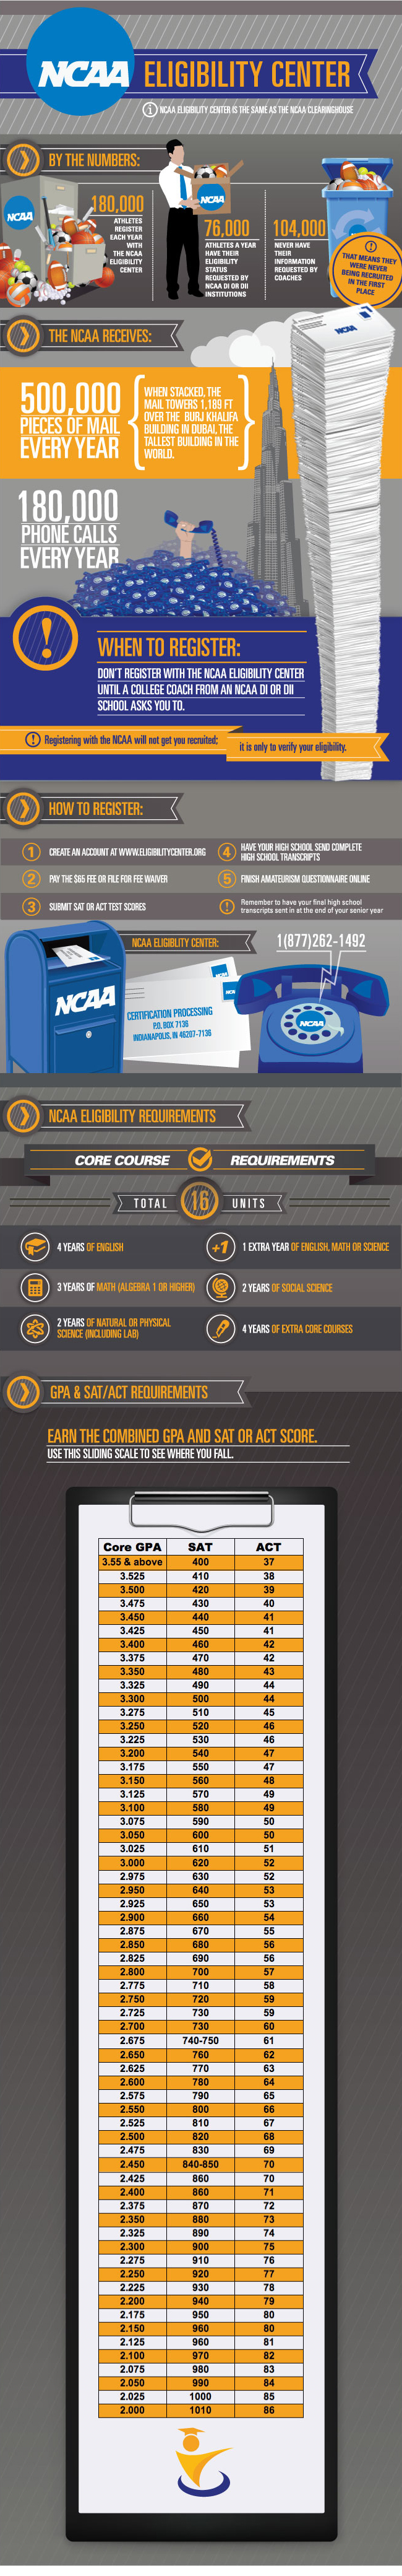 NCAA_ELIGIBILITY_ATHNET